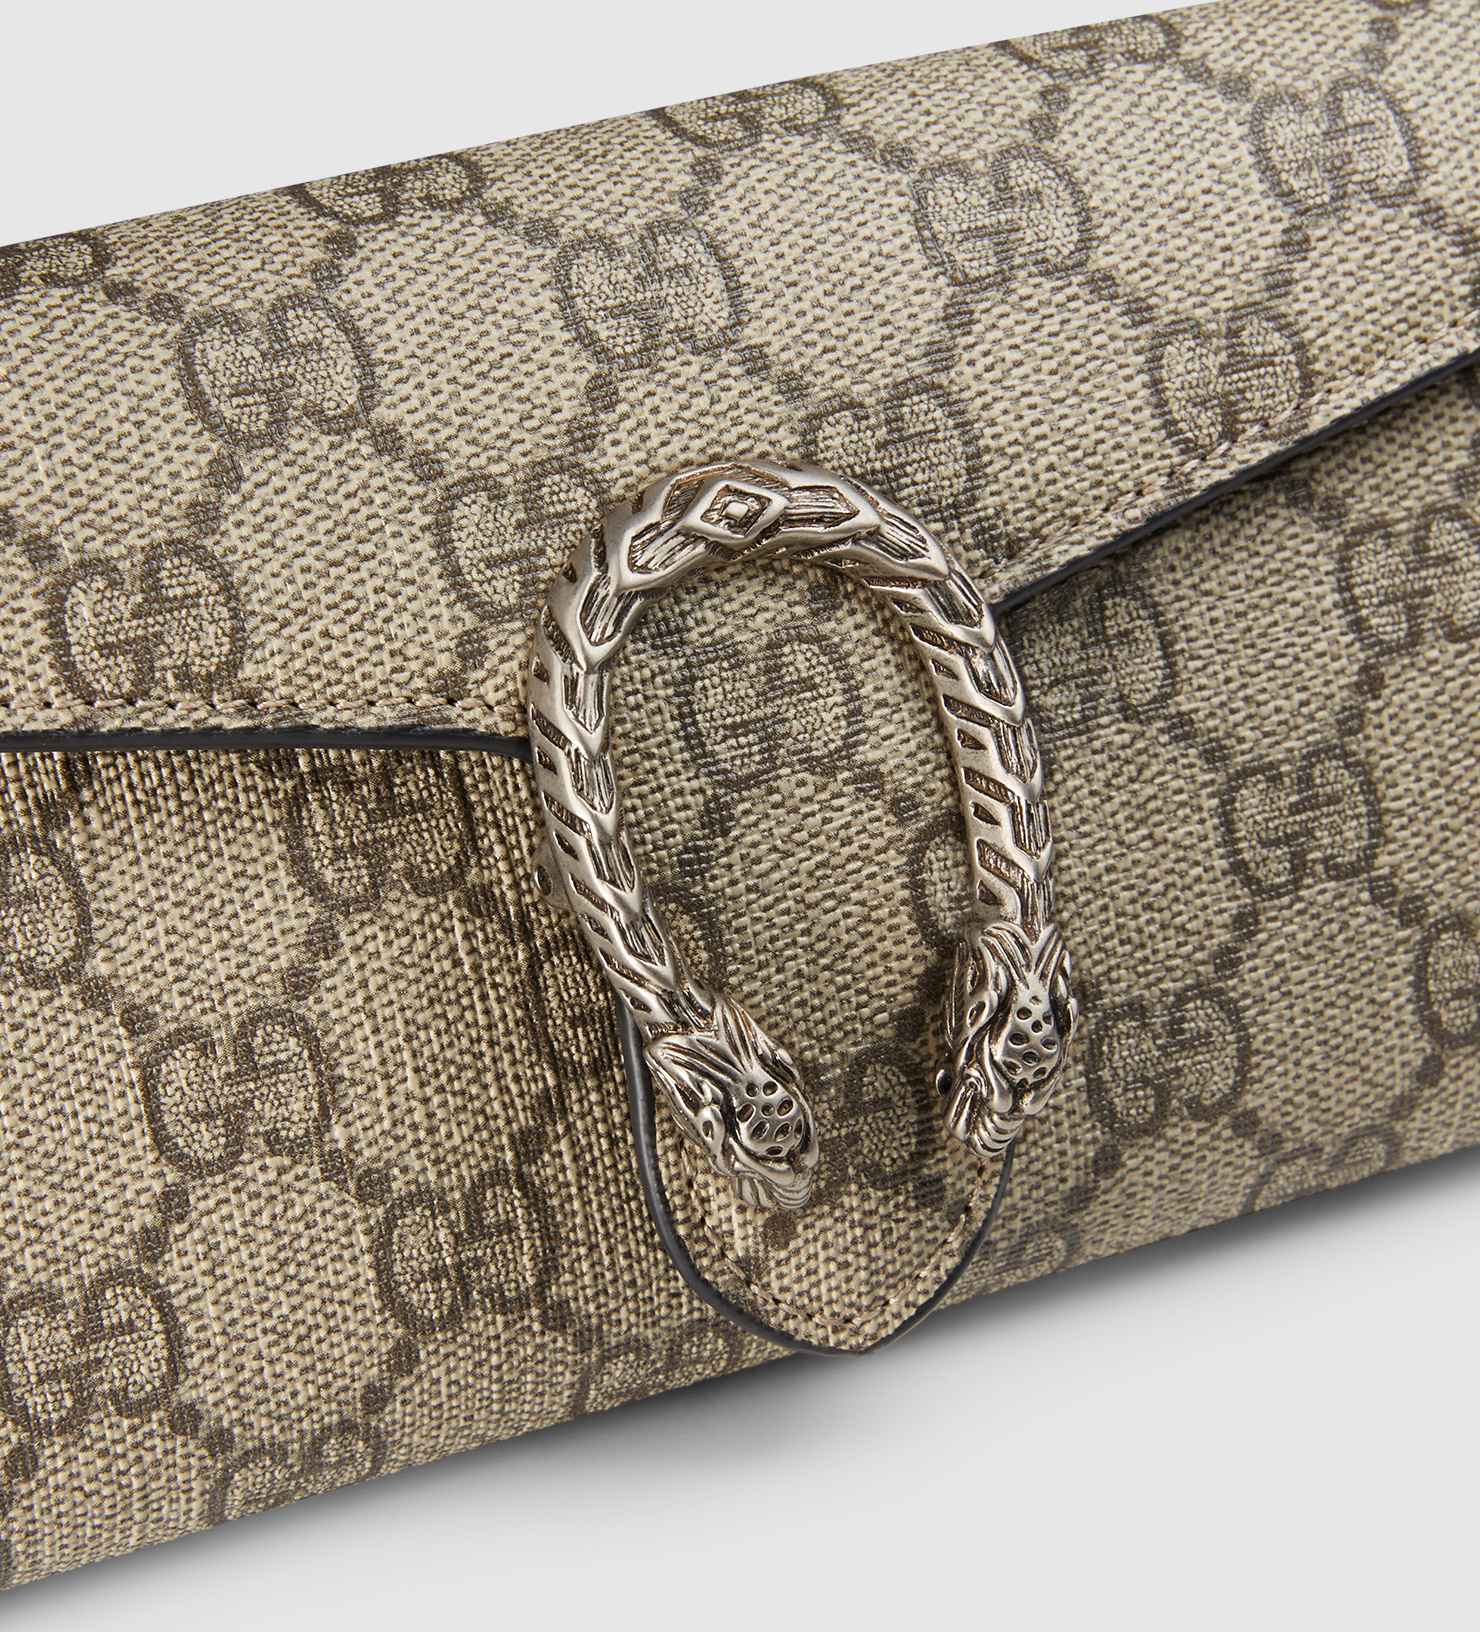 194980646be Gucci Dionysus Gg Supreme Chain Wallet in Natural - Lyst